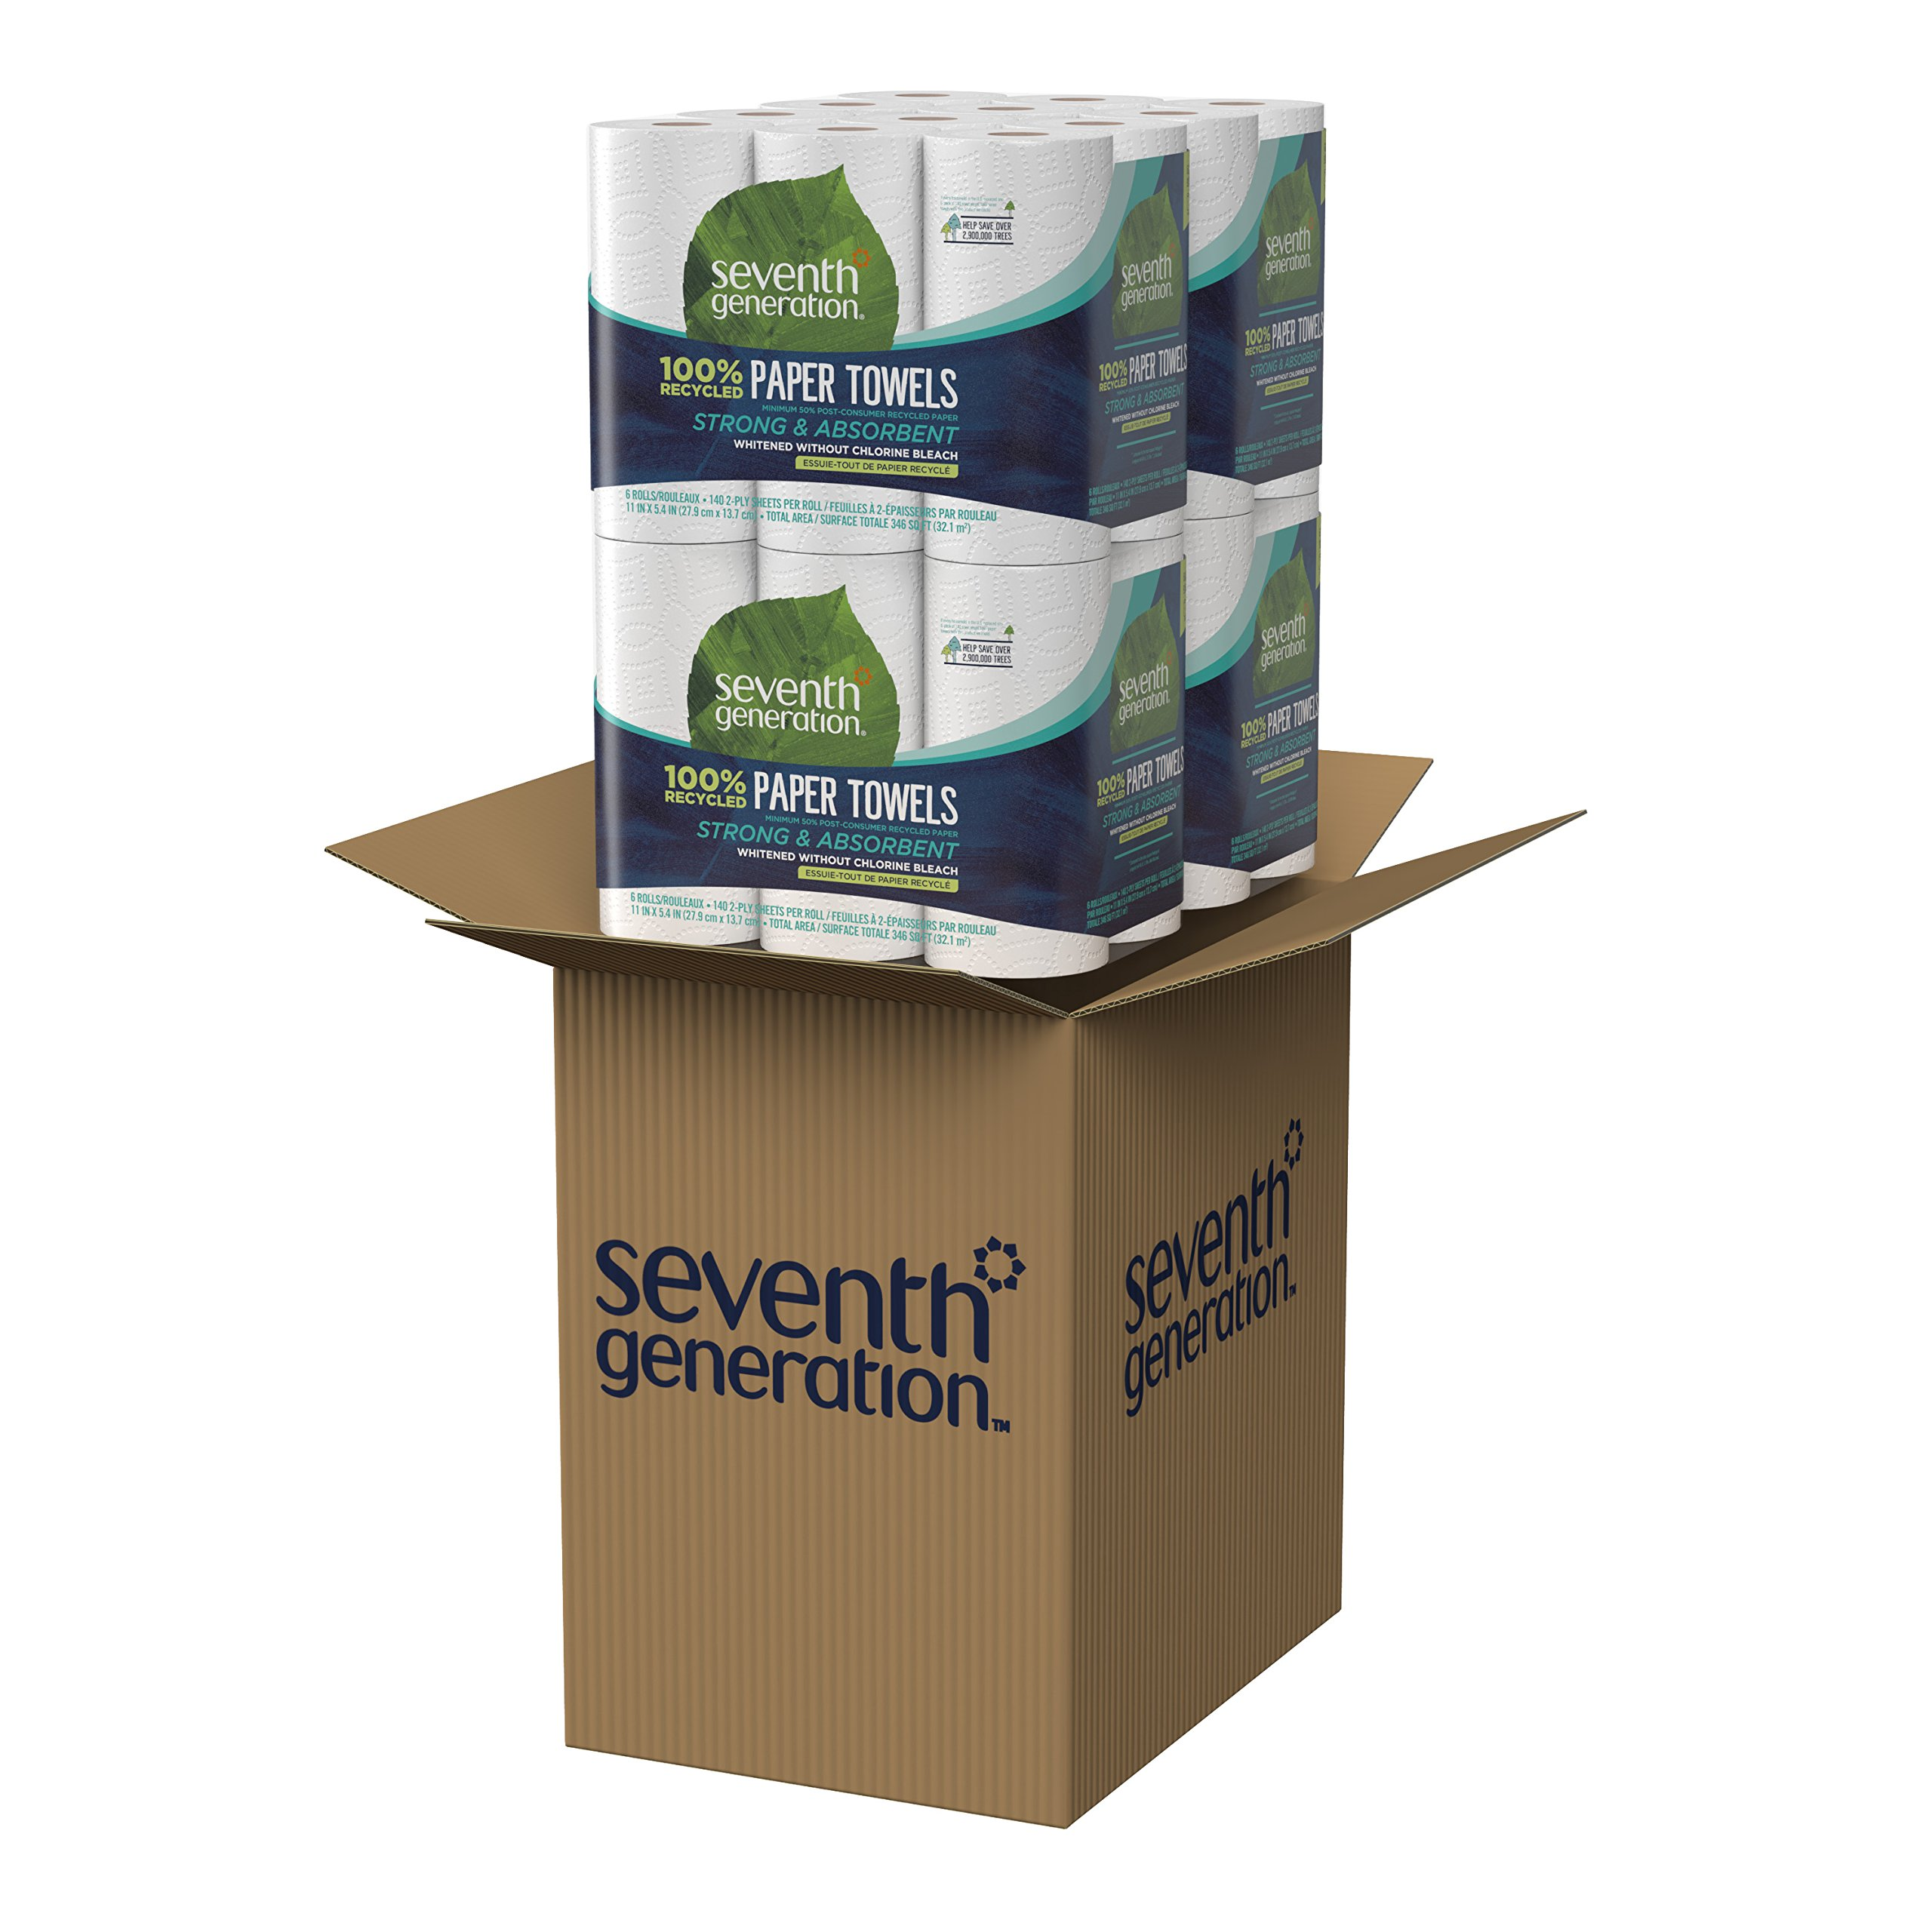 Seventh Generation Paper Towels, 100% Recycled Paper, 2-ply, 6-Count (Pack of 4) by Seventh Generation (Image #13)